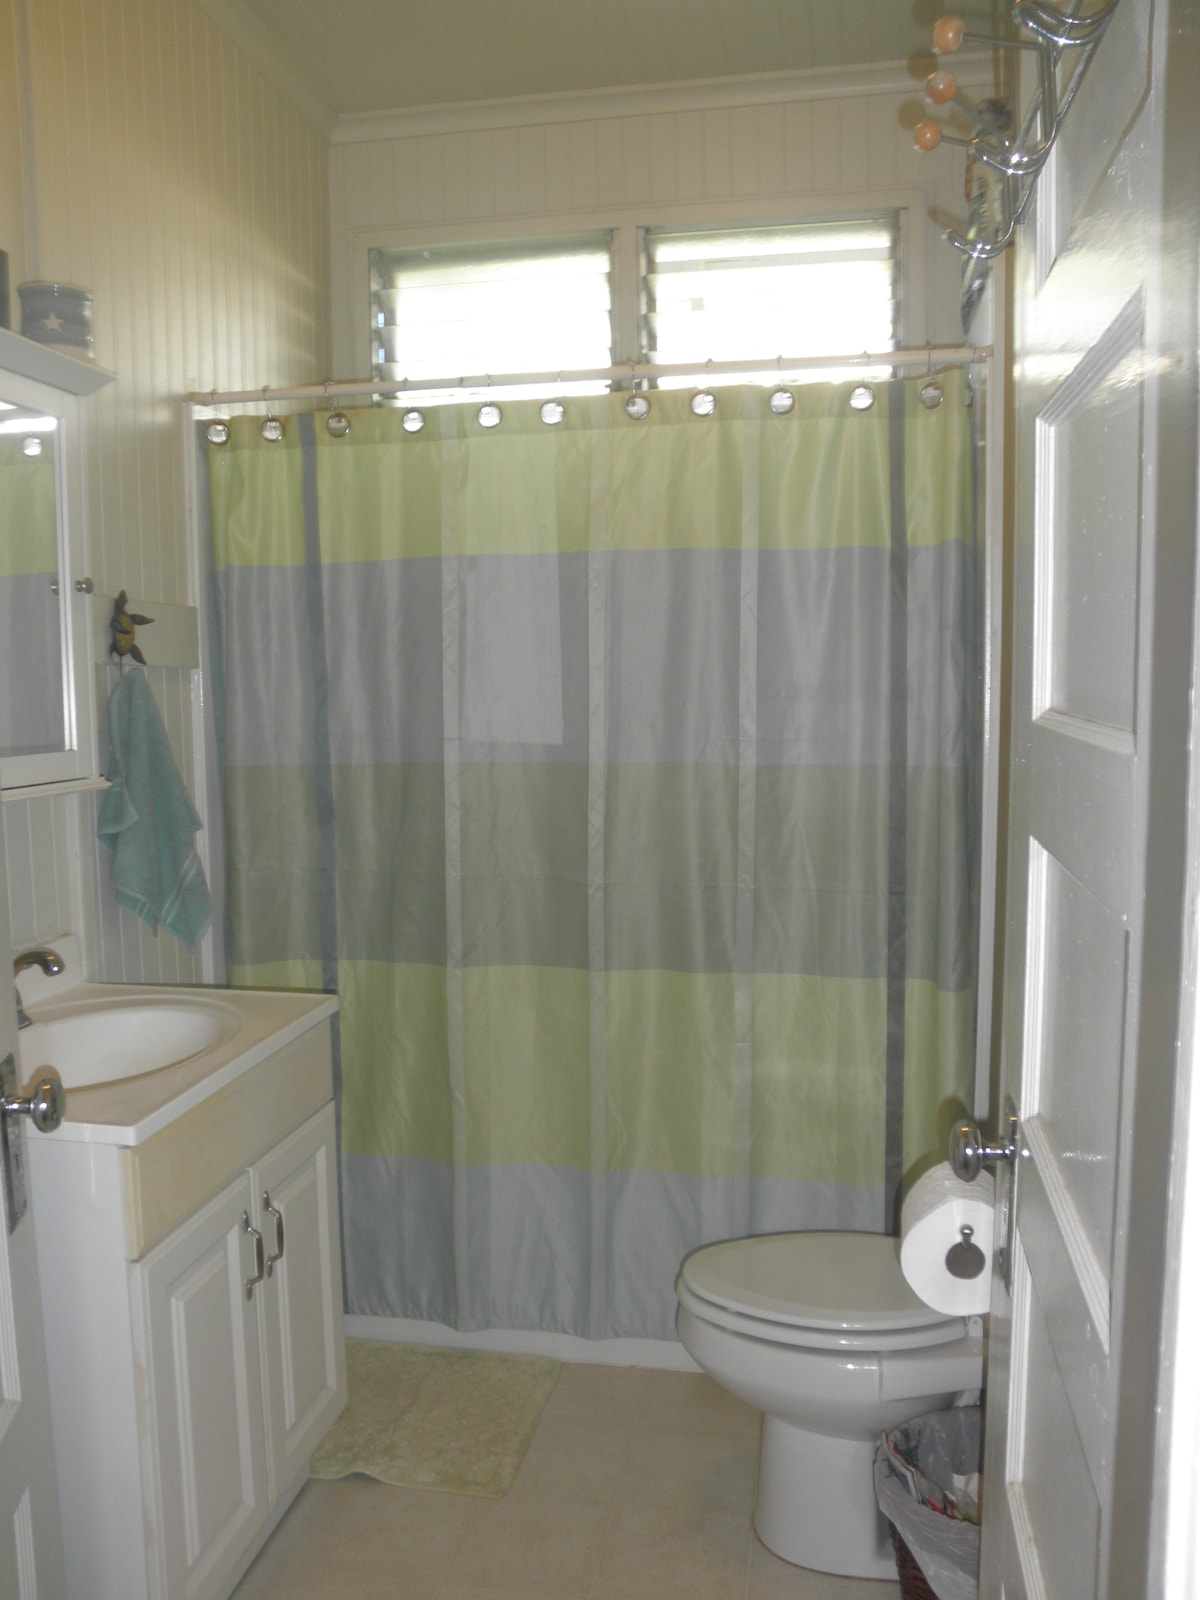 YOUR OWN PRIVATE BATHROOM!